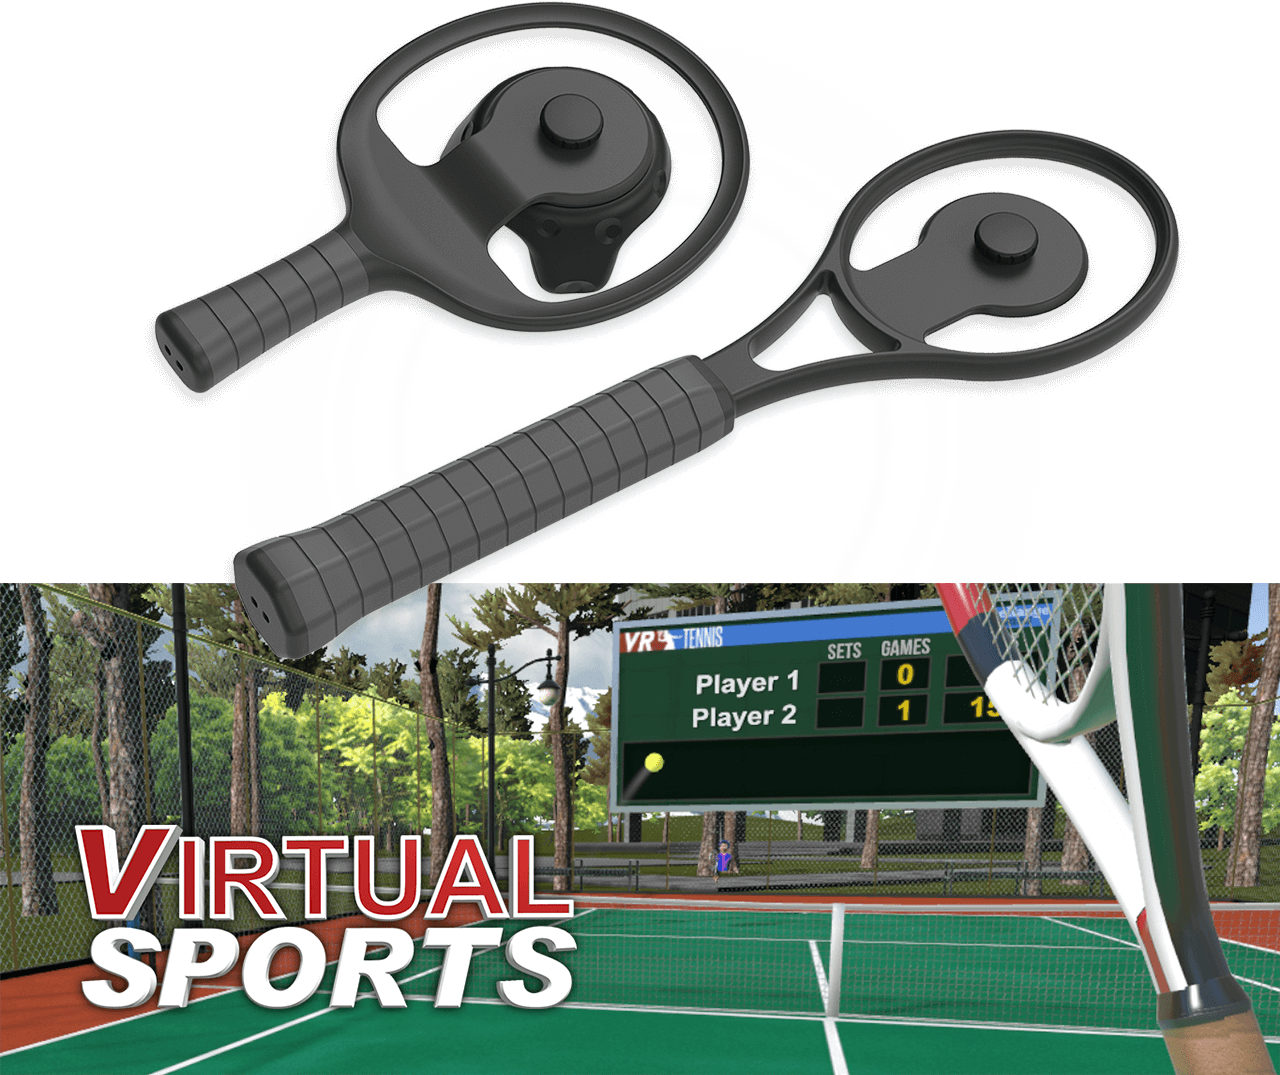 The Vive Tracker | The Key to Pro Level Conditioning in VR